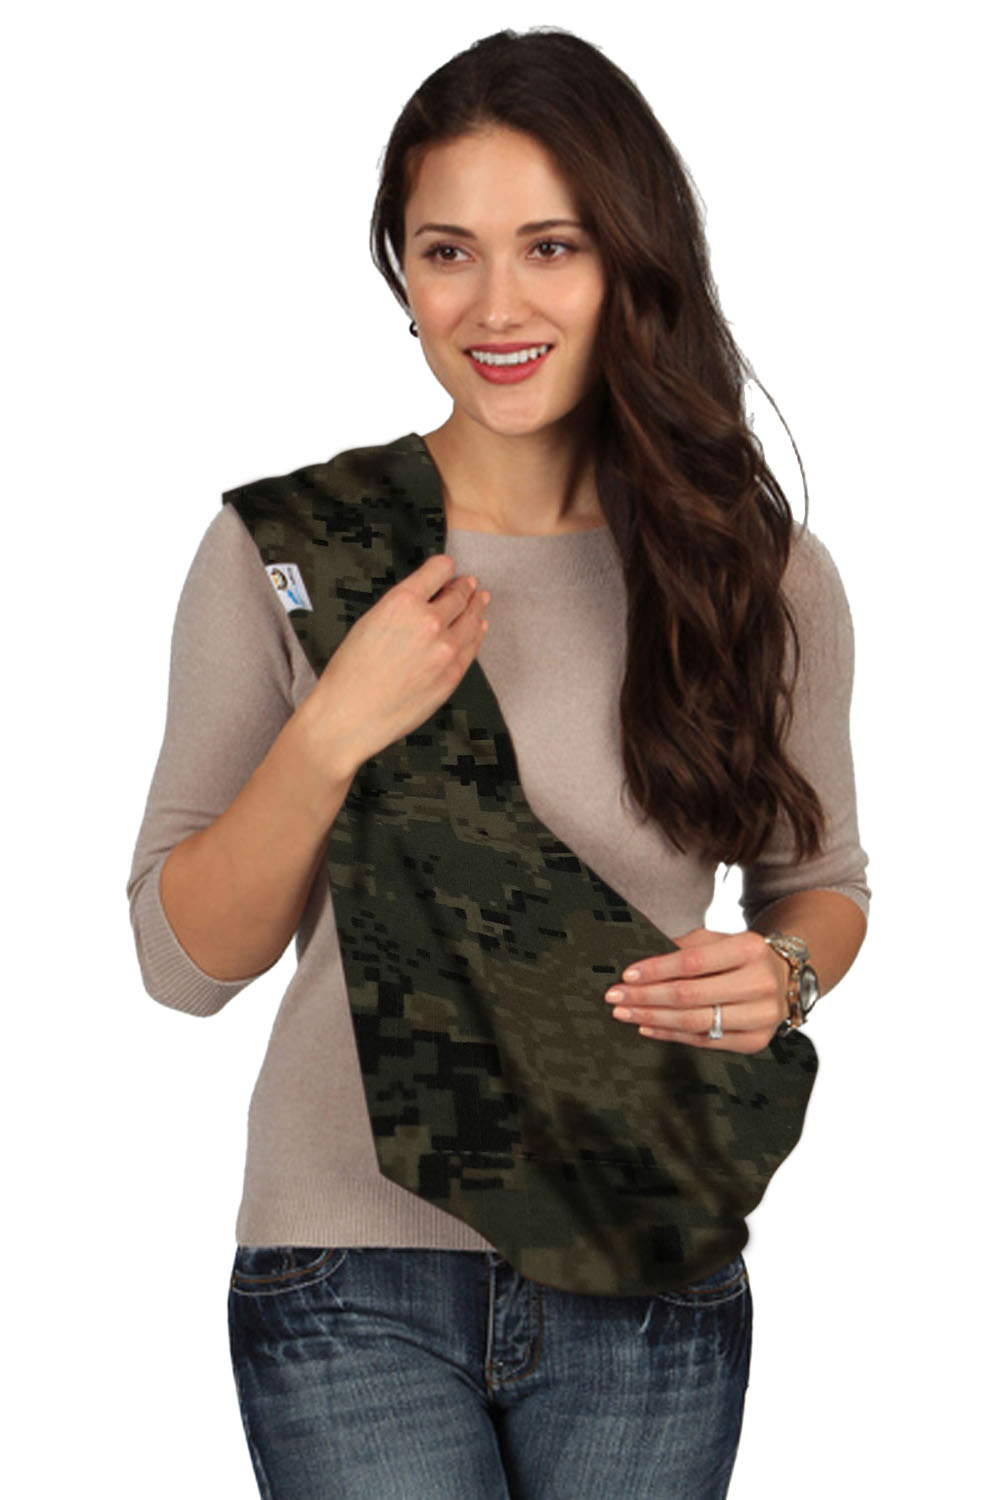 HugaMonkey Camouflage Dark Green Military Infant Baby Soft Carrier Sling by Military Baby Slings